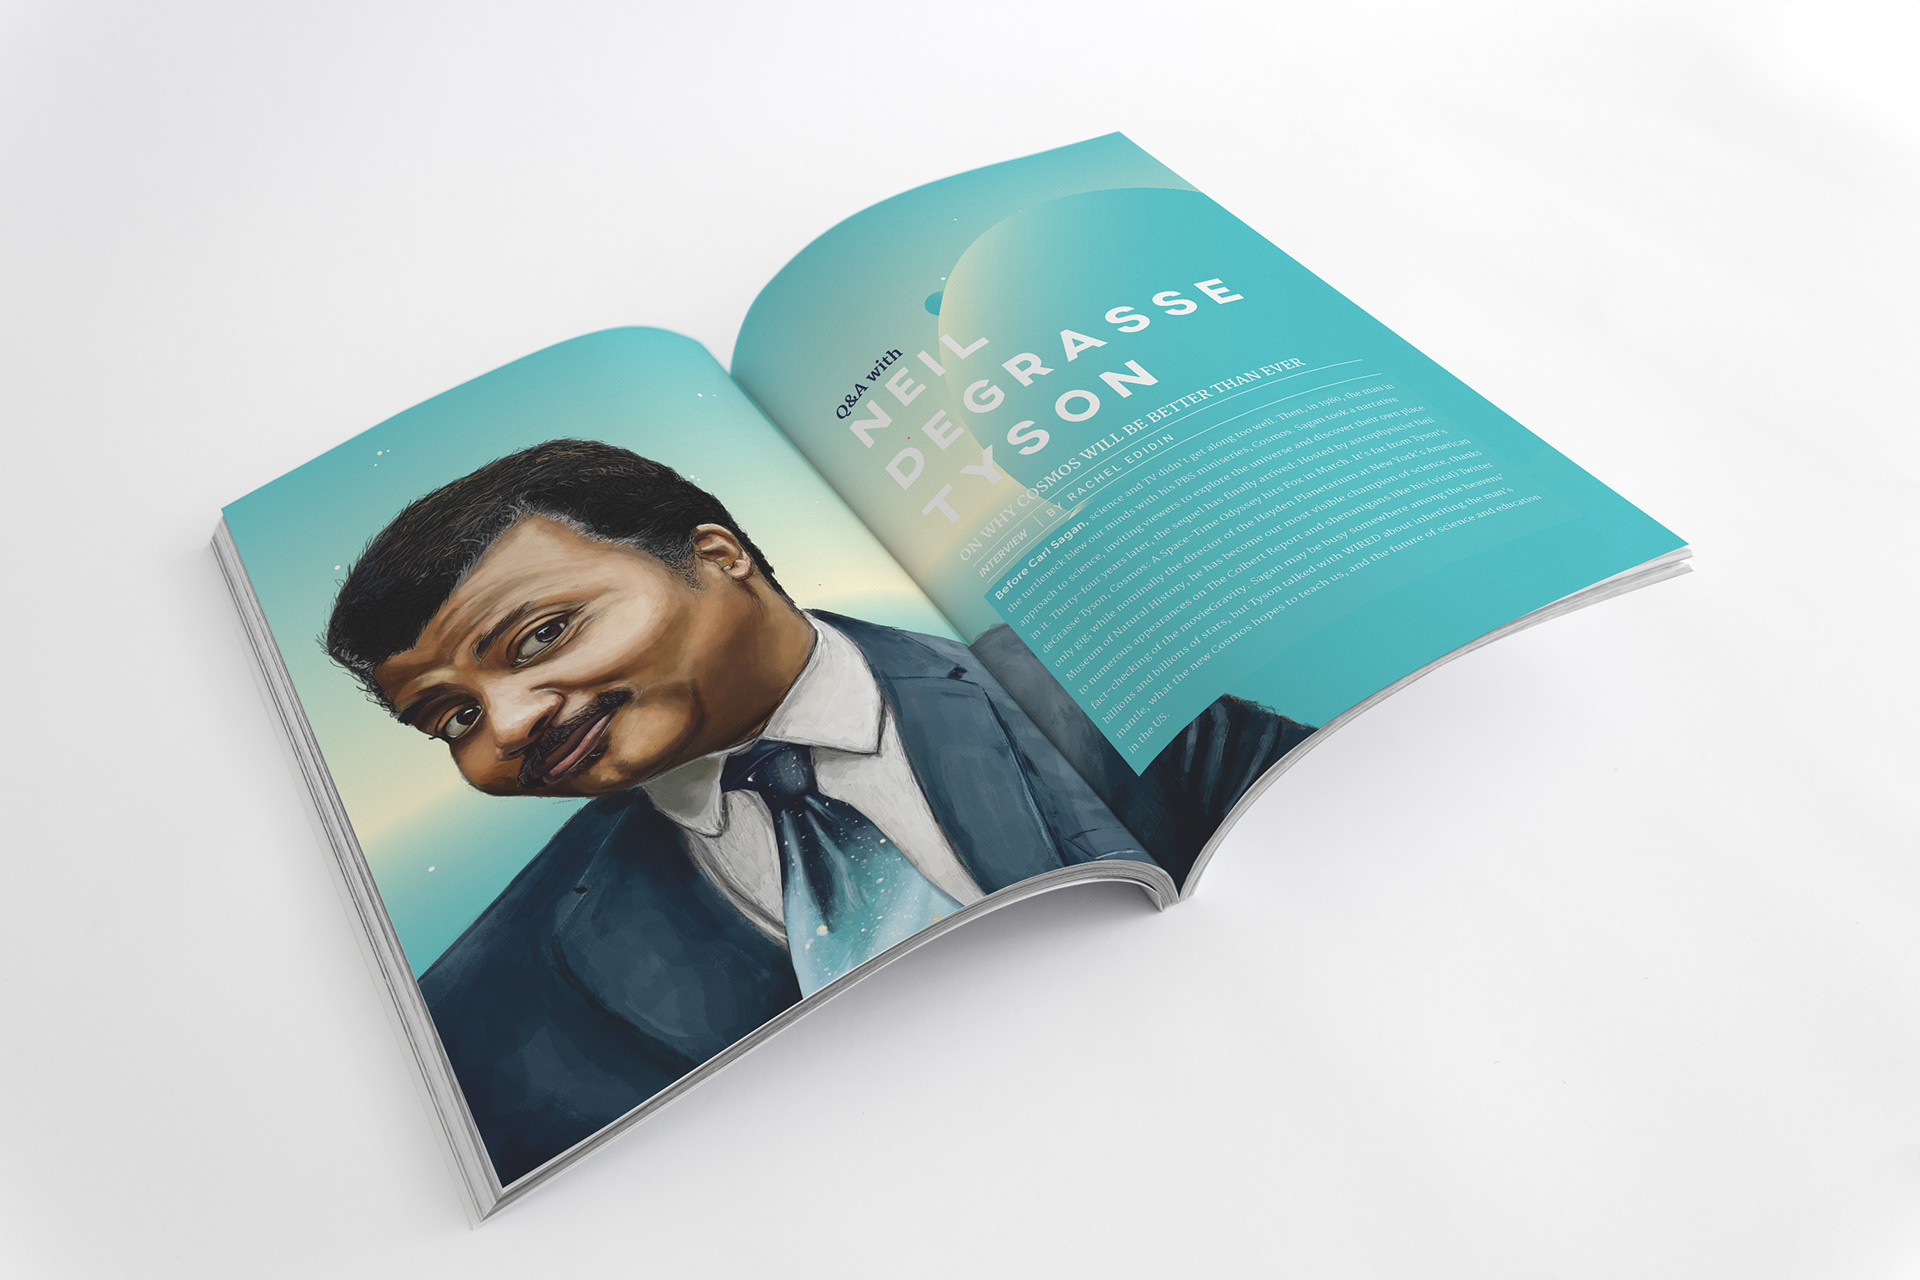 Ross Timcke - Neil deGrasse Tyson - Article Layout